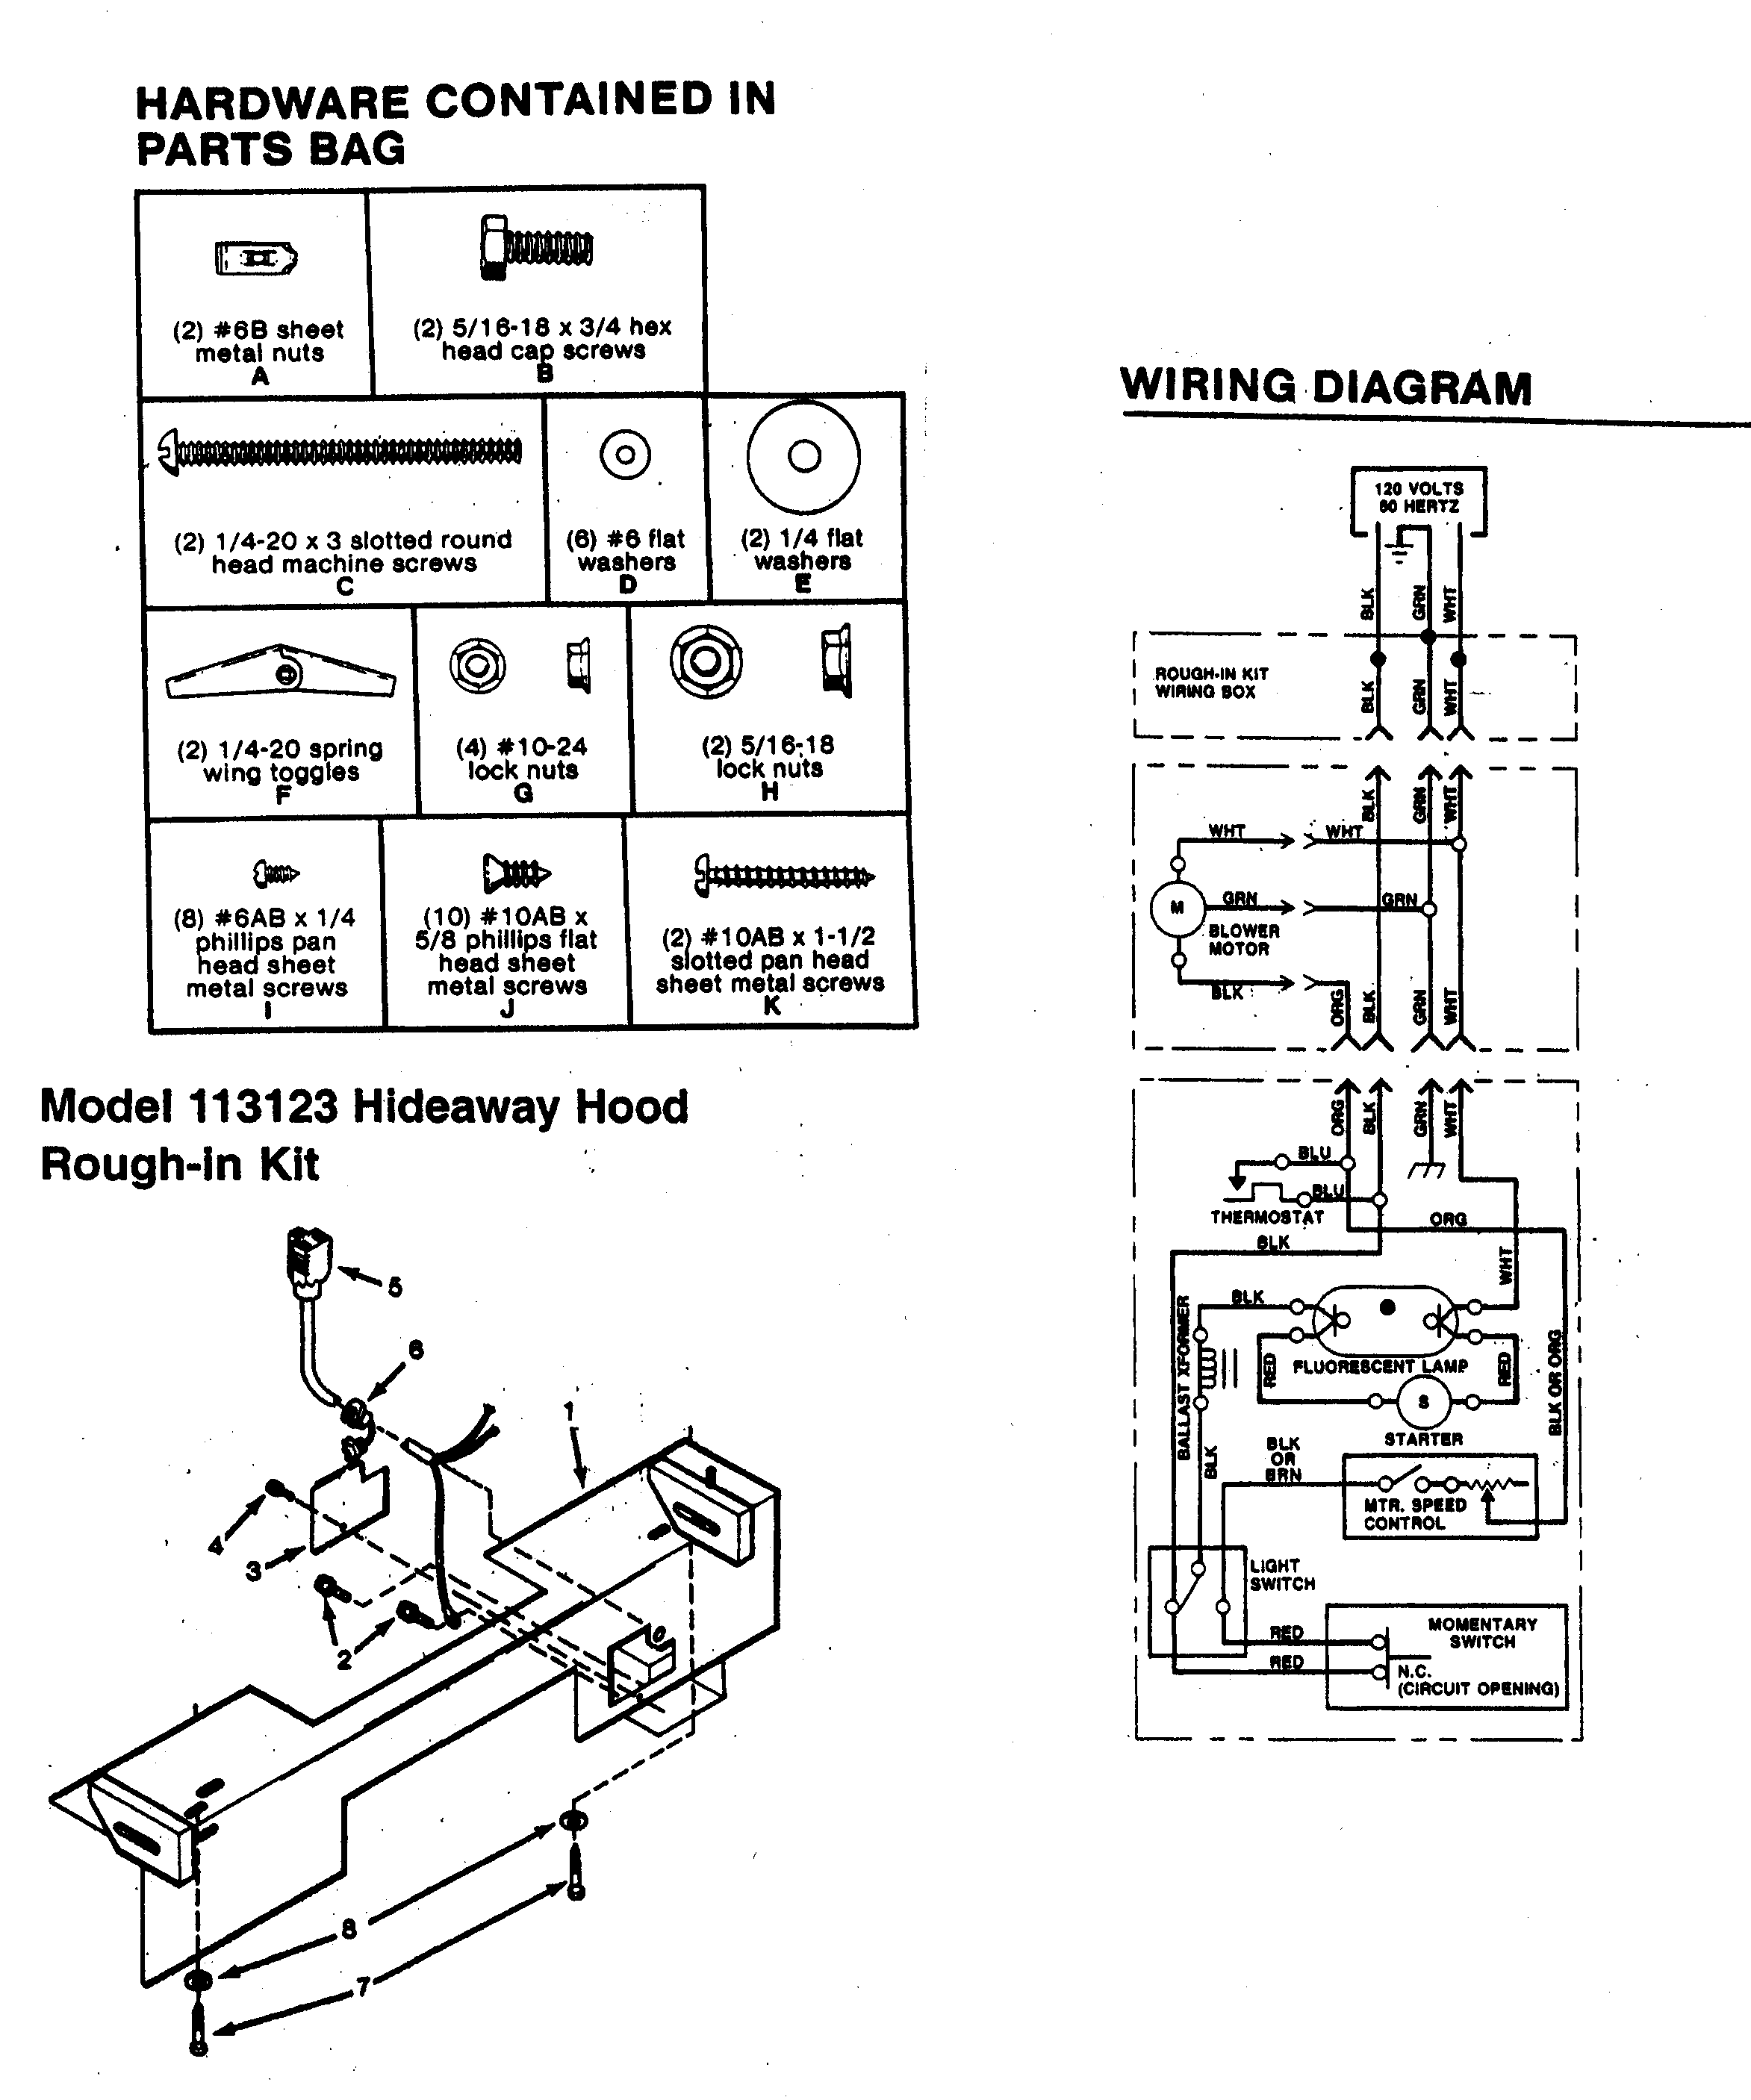 medium resolution of unique wiring diagram for electric stove outlet diagram diagramsample diagramtemplate wiringdiagram